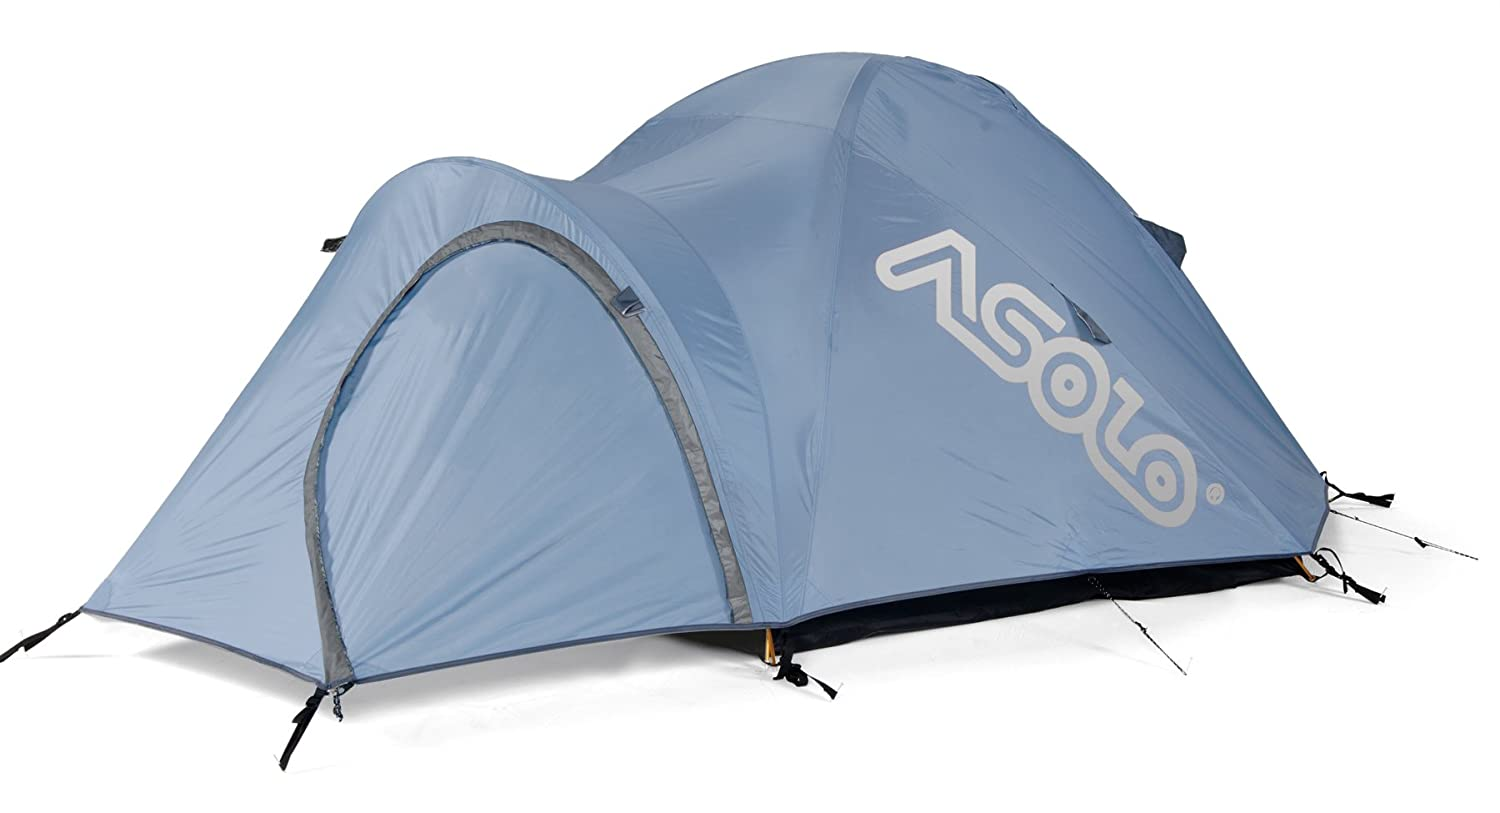 Amazon.com  Asolo Ptarmigan 3 Person Three Season Tent (Blue/Smoke Medium)  Family Tents  Sports u0026 Outdoors  sc 1 st  Amazon.com & Amazon.com : Asolo Ptarmigan 3 Person Three Season Tent (Blue ...